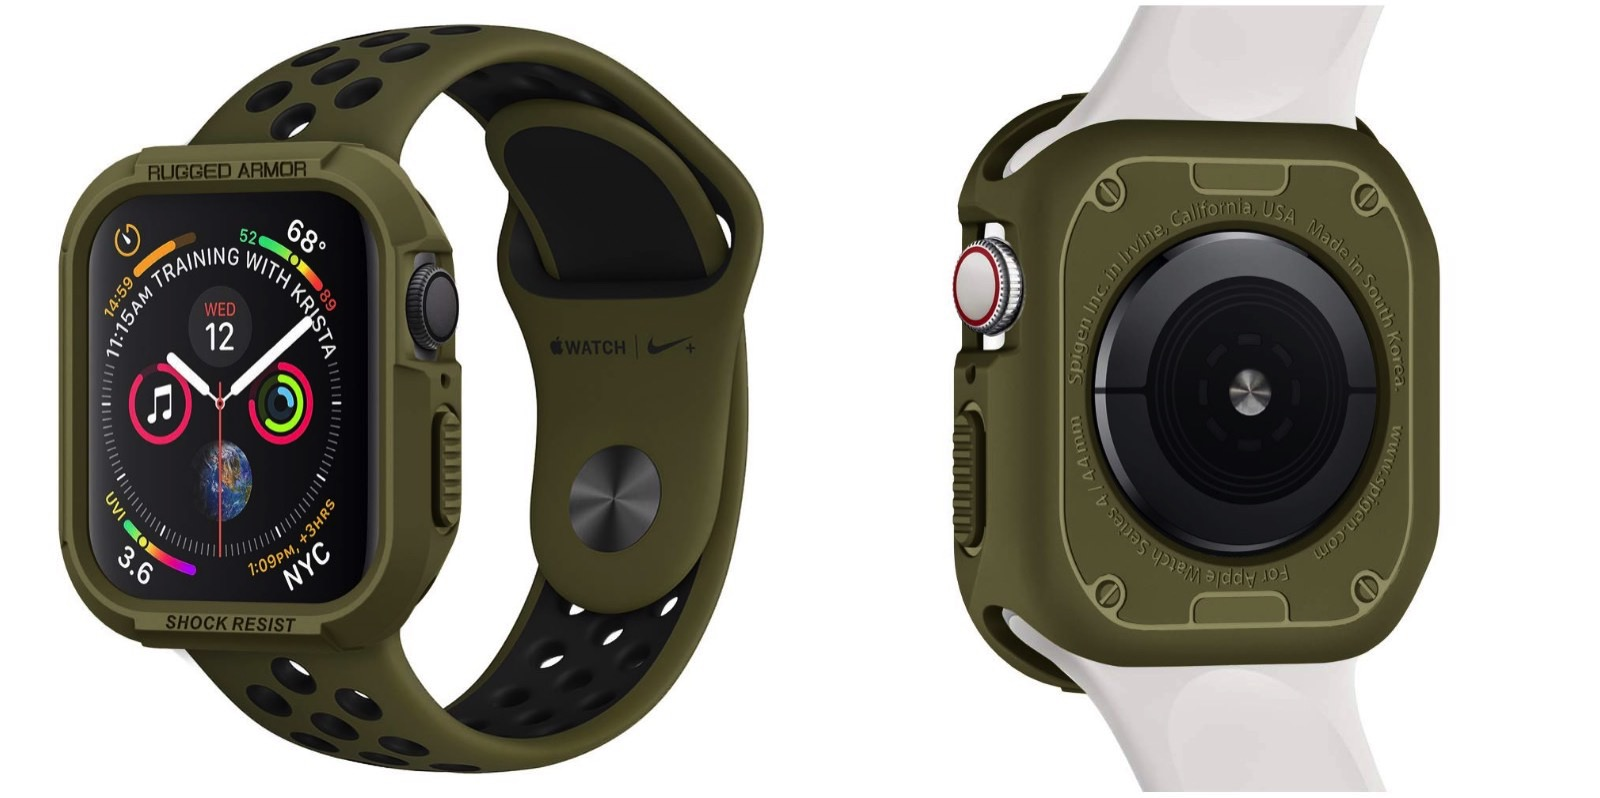 Apple Watch Rugged Armor